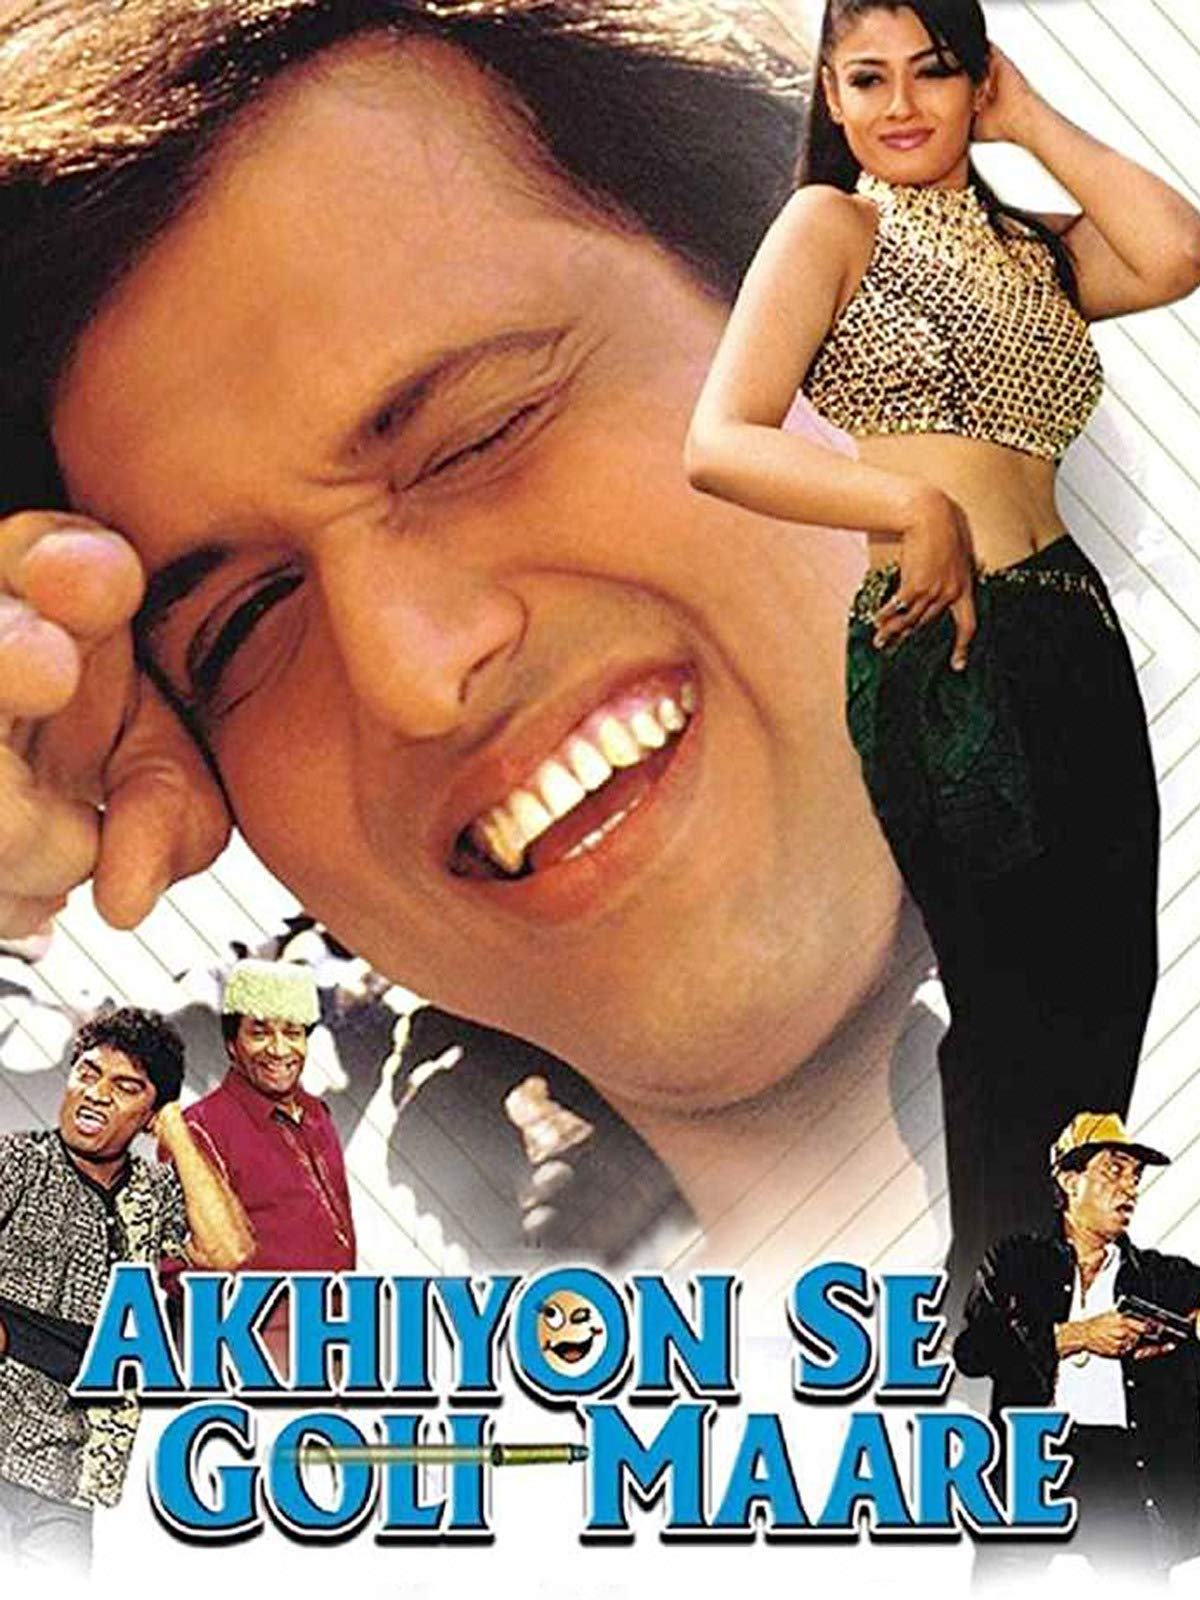 Akhiyon Se Goli Maare on Amazon Prime Video UK